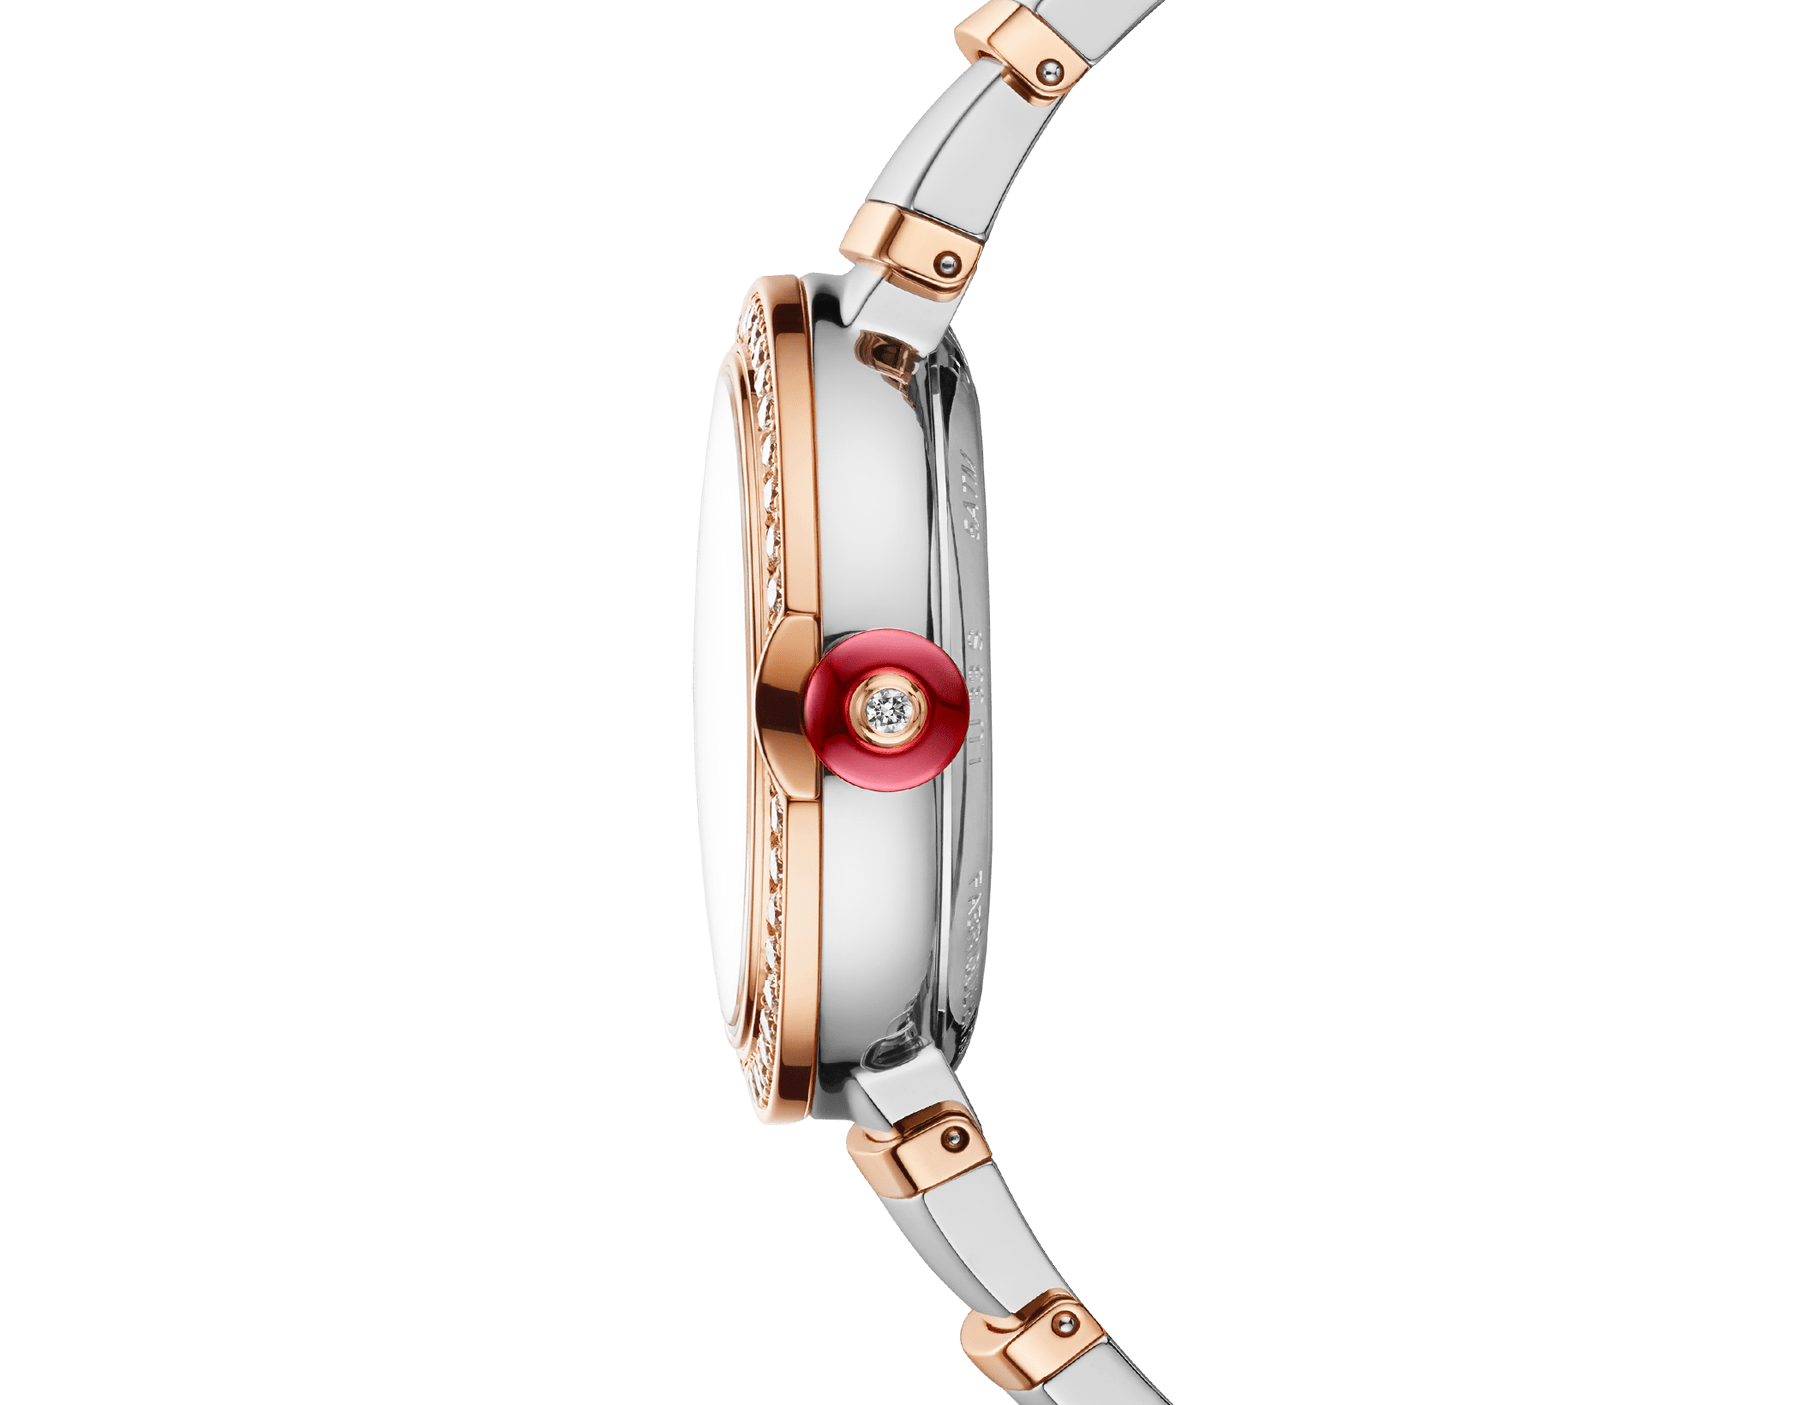 LVCEA watch with stainless steel case, 18 kt rose gold bezel set with brilliant-cut diamonds, green dial, diamond indexes, date opening, stainless steel and 18 kt rose gold bracelet. Exclusive Edition for Middle East 103289 image 3